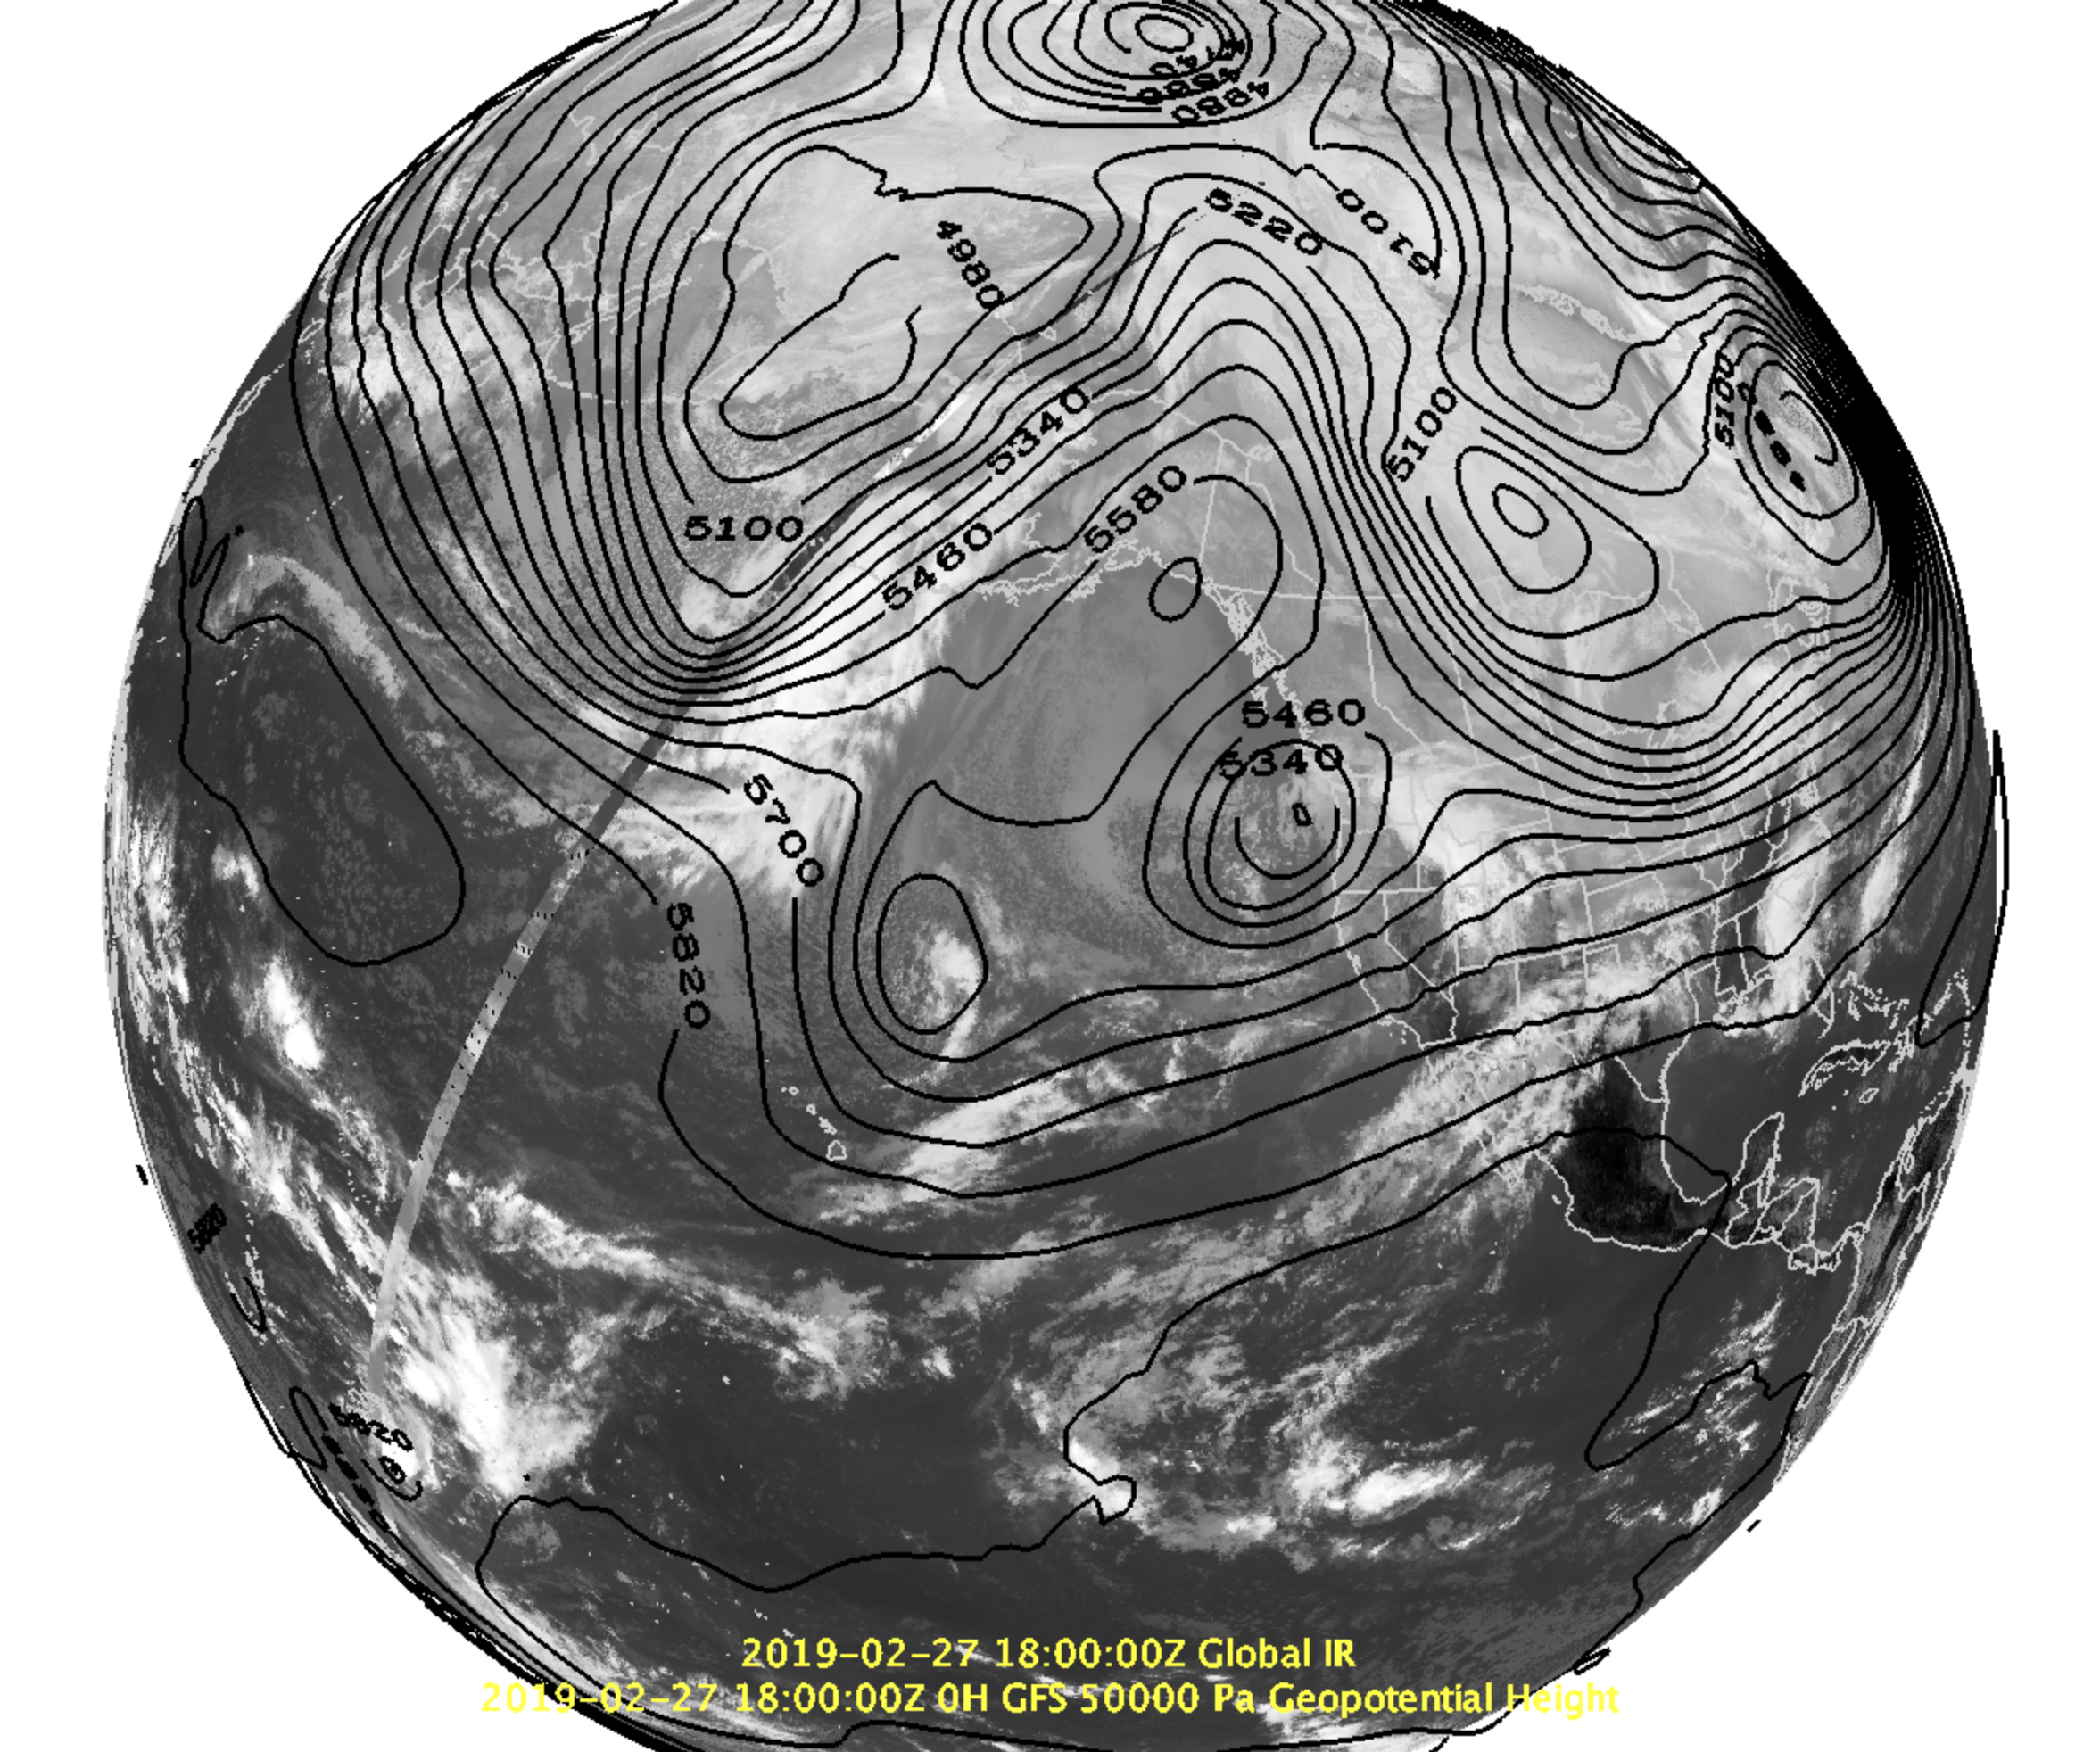 500 mb heights (contoured) and IR satellite imagery highlighting the weak blocking in the eastern Pacific and the closed low off the PNW coast on Wednesday.